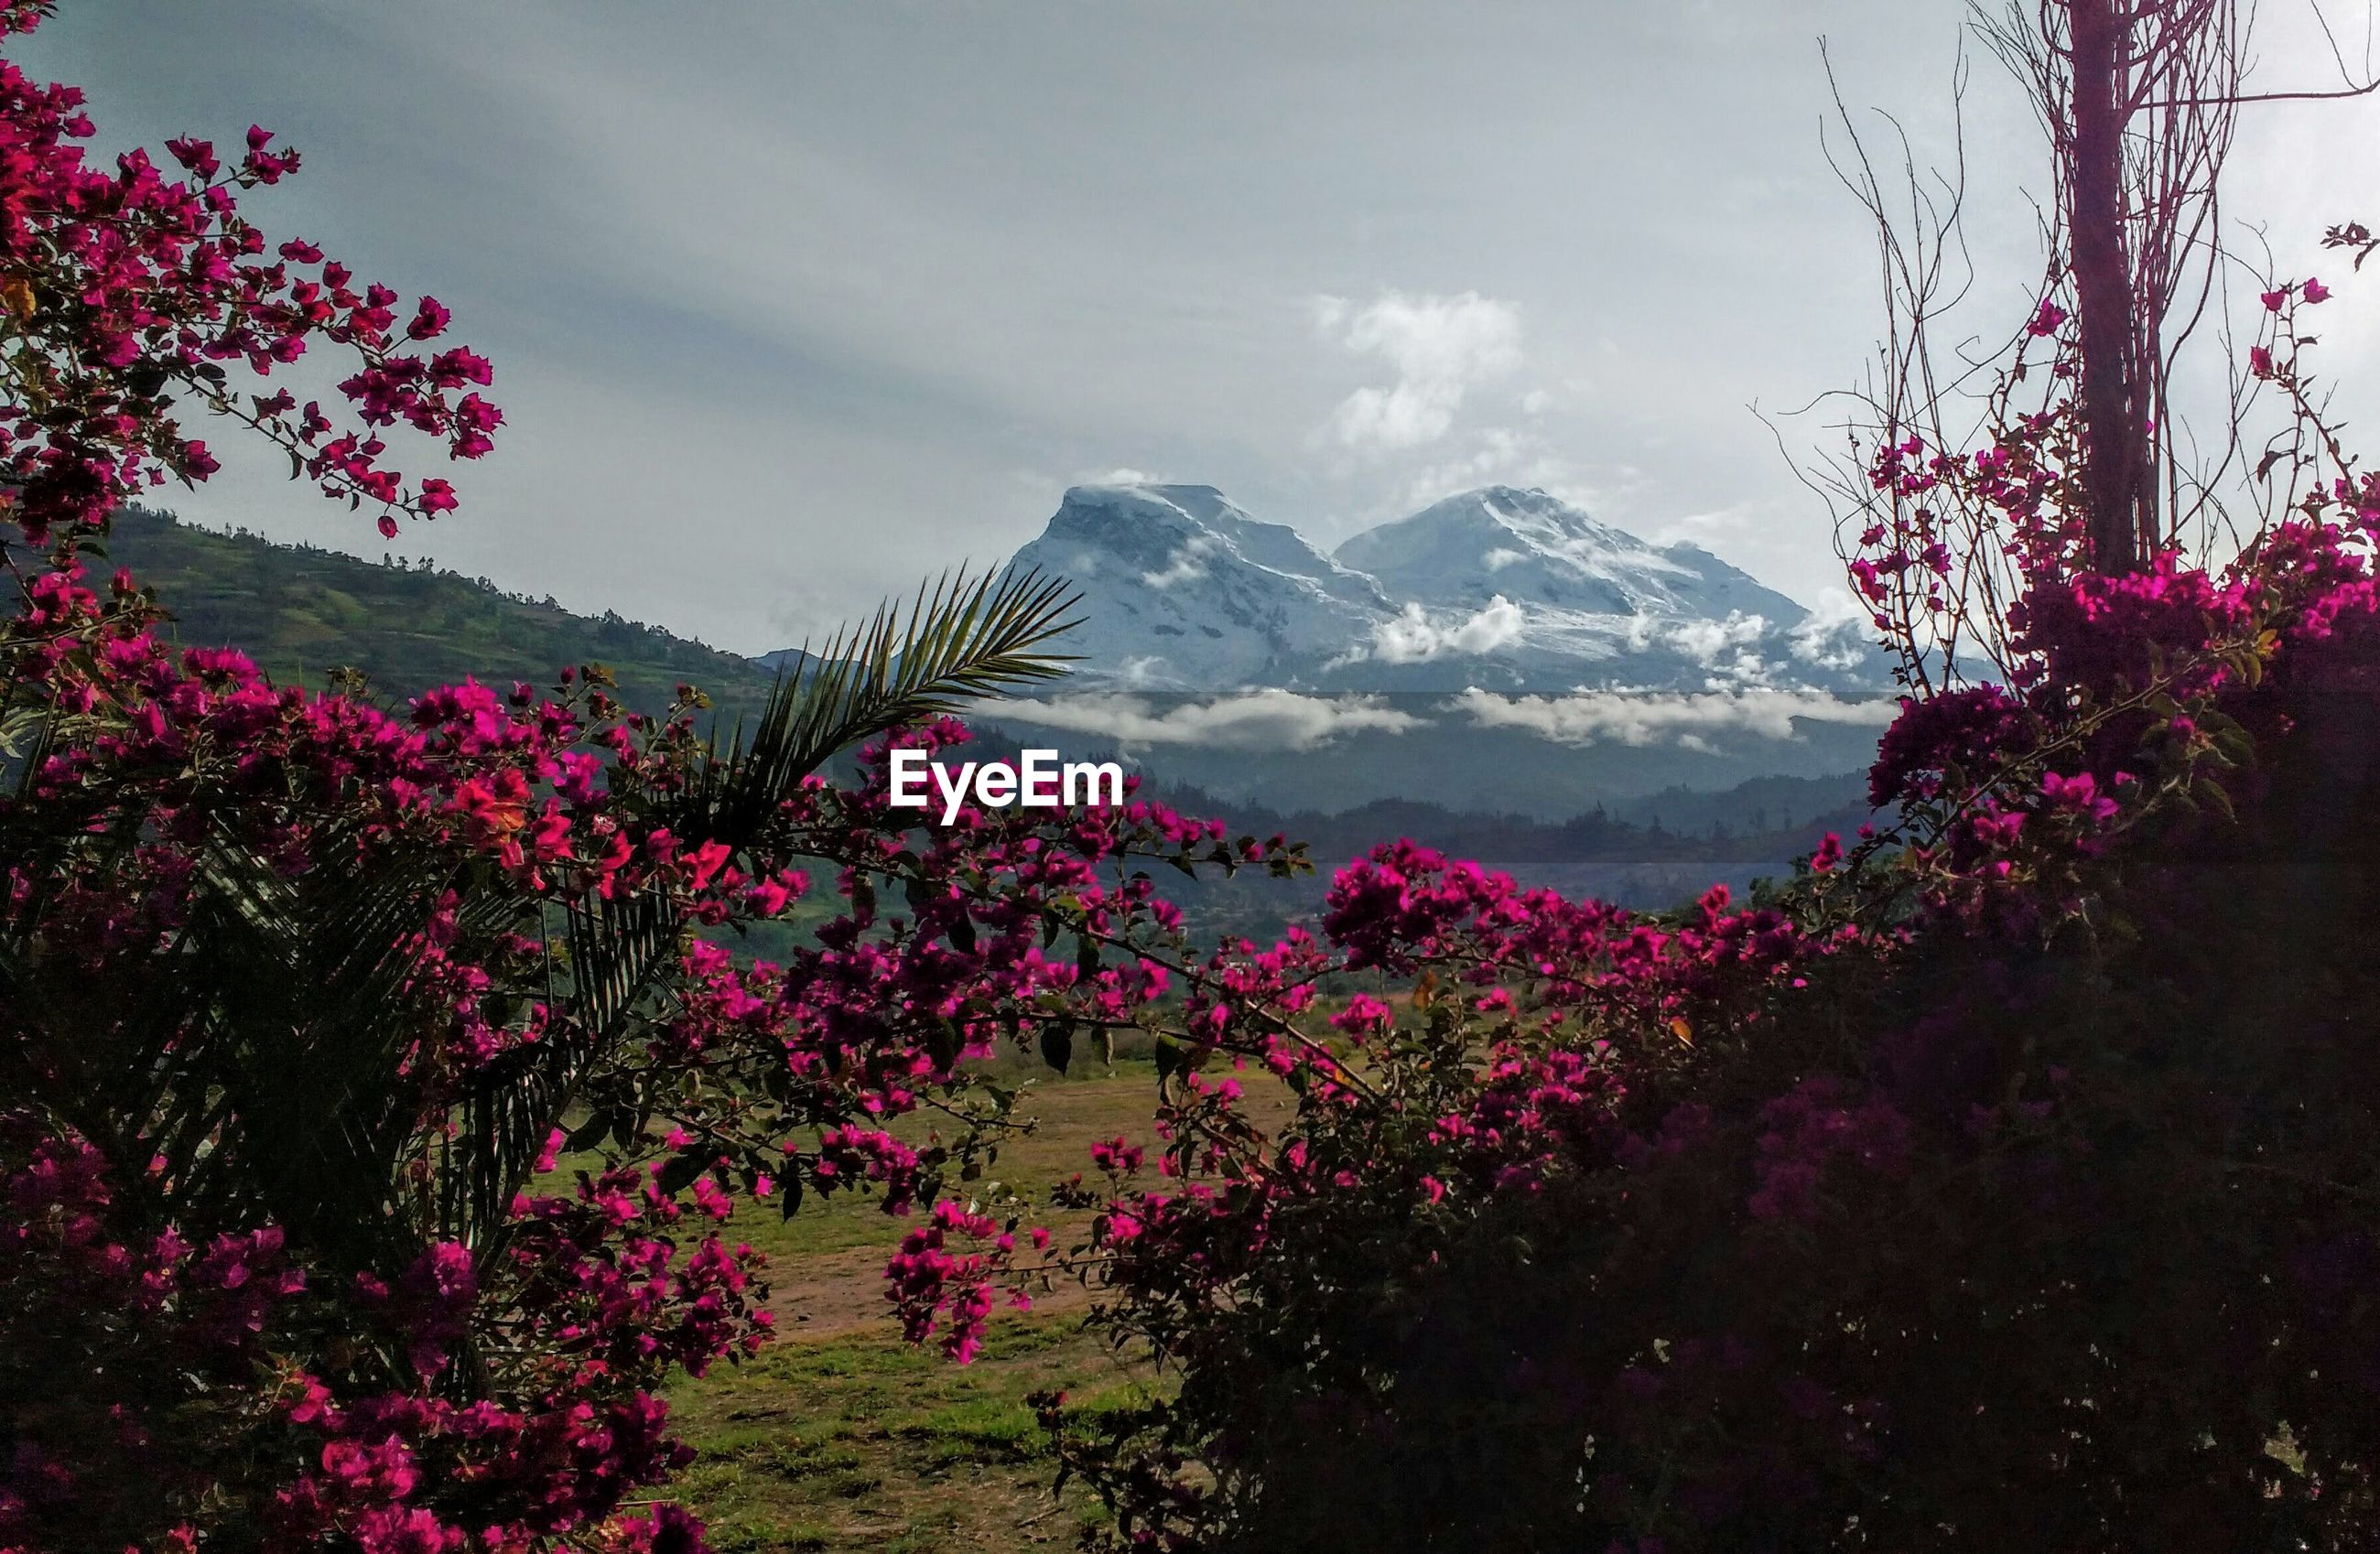 PINK FLOWERING PLANTS AGAINST TREES AND MOUNTAIN AGAINST SKY